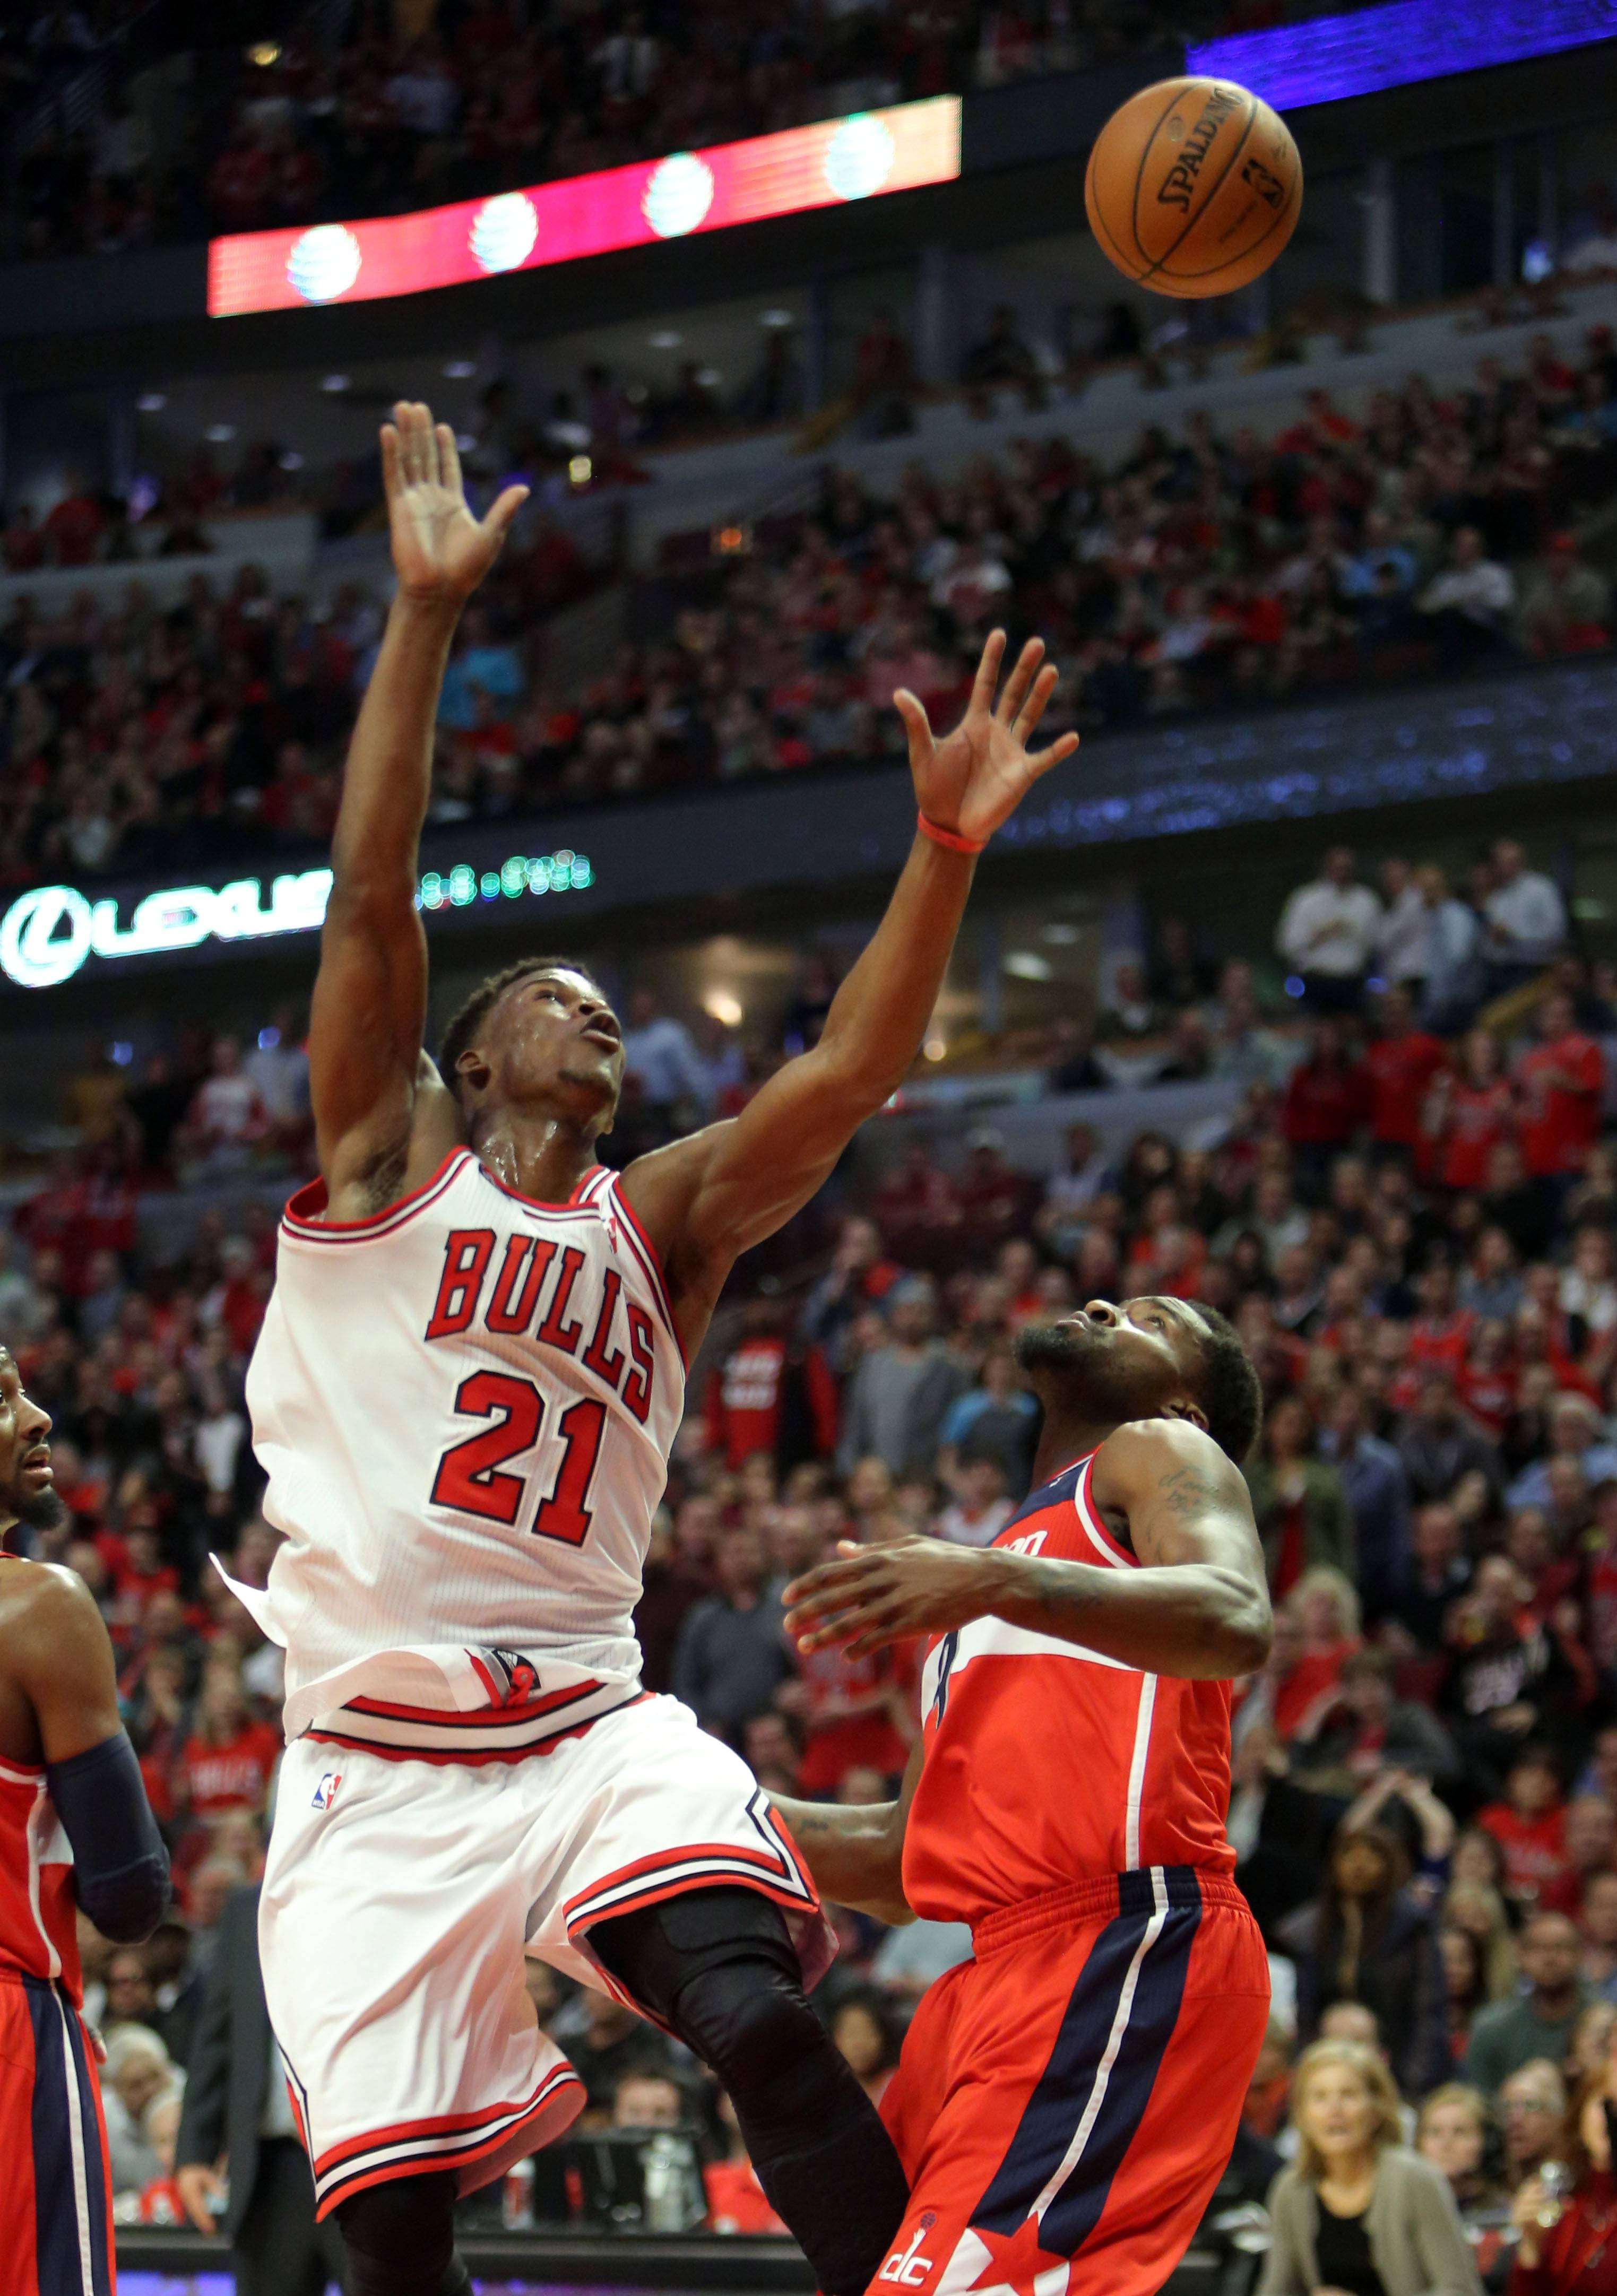 Chicago Bulls guard Jimmy Butler goes for a rebound.